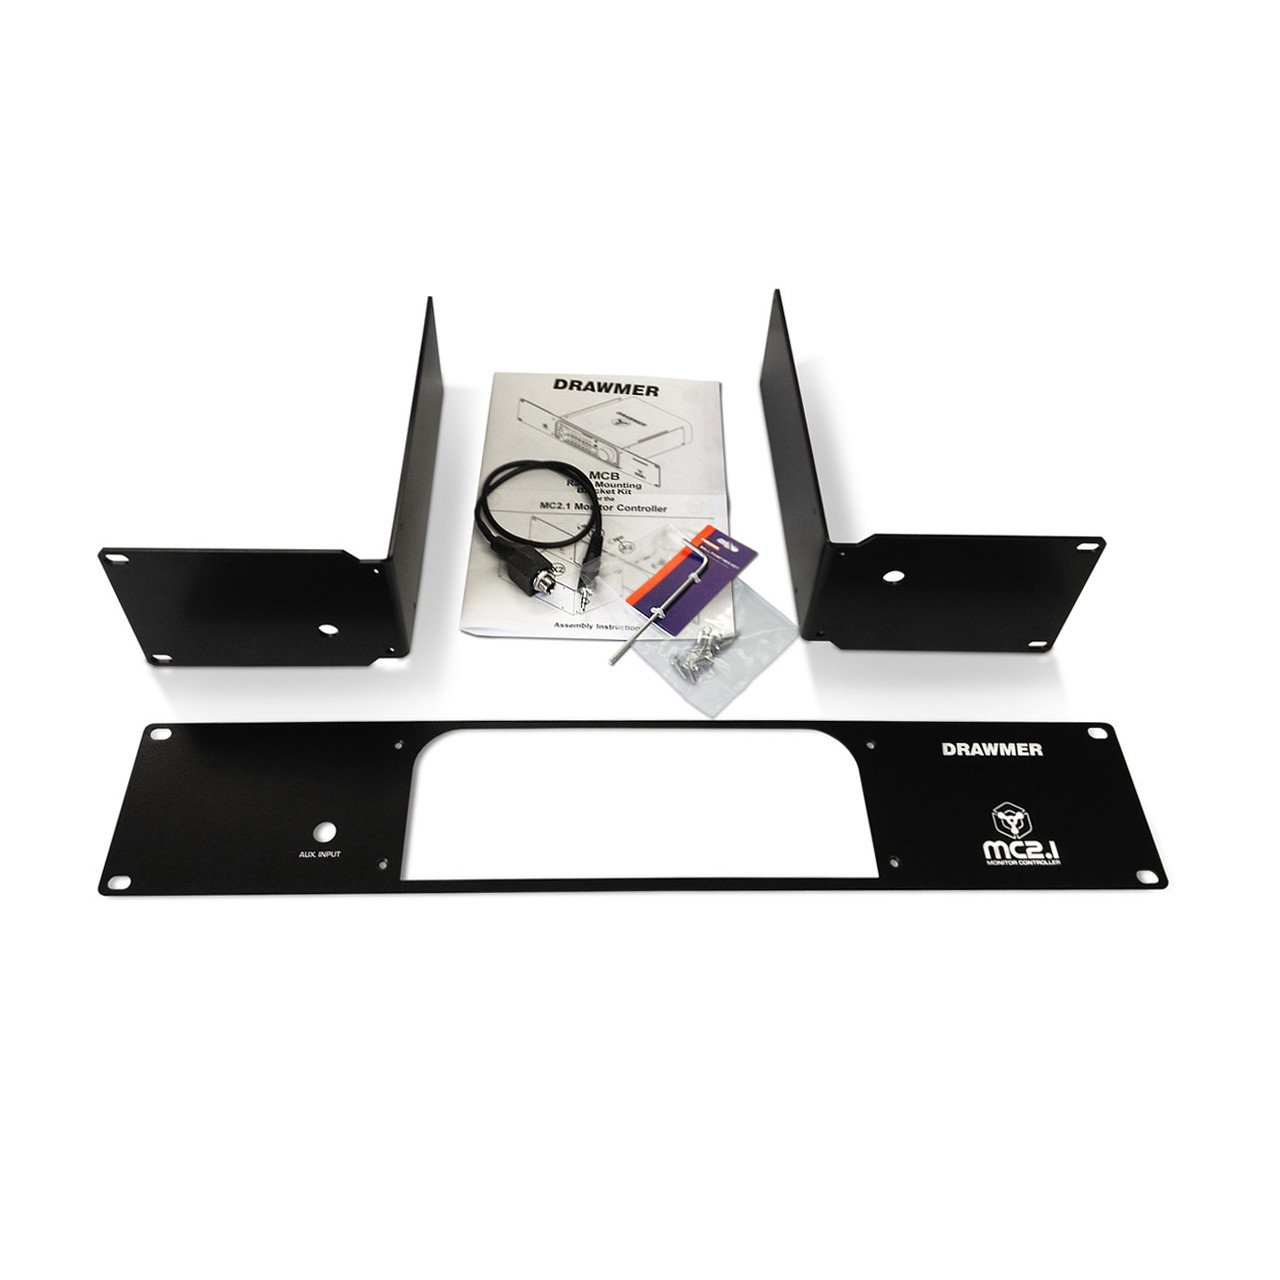 Controller Accessories - Drawmer MC2.1 Rack Mount Kit